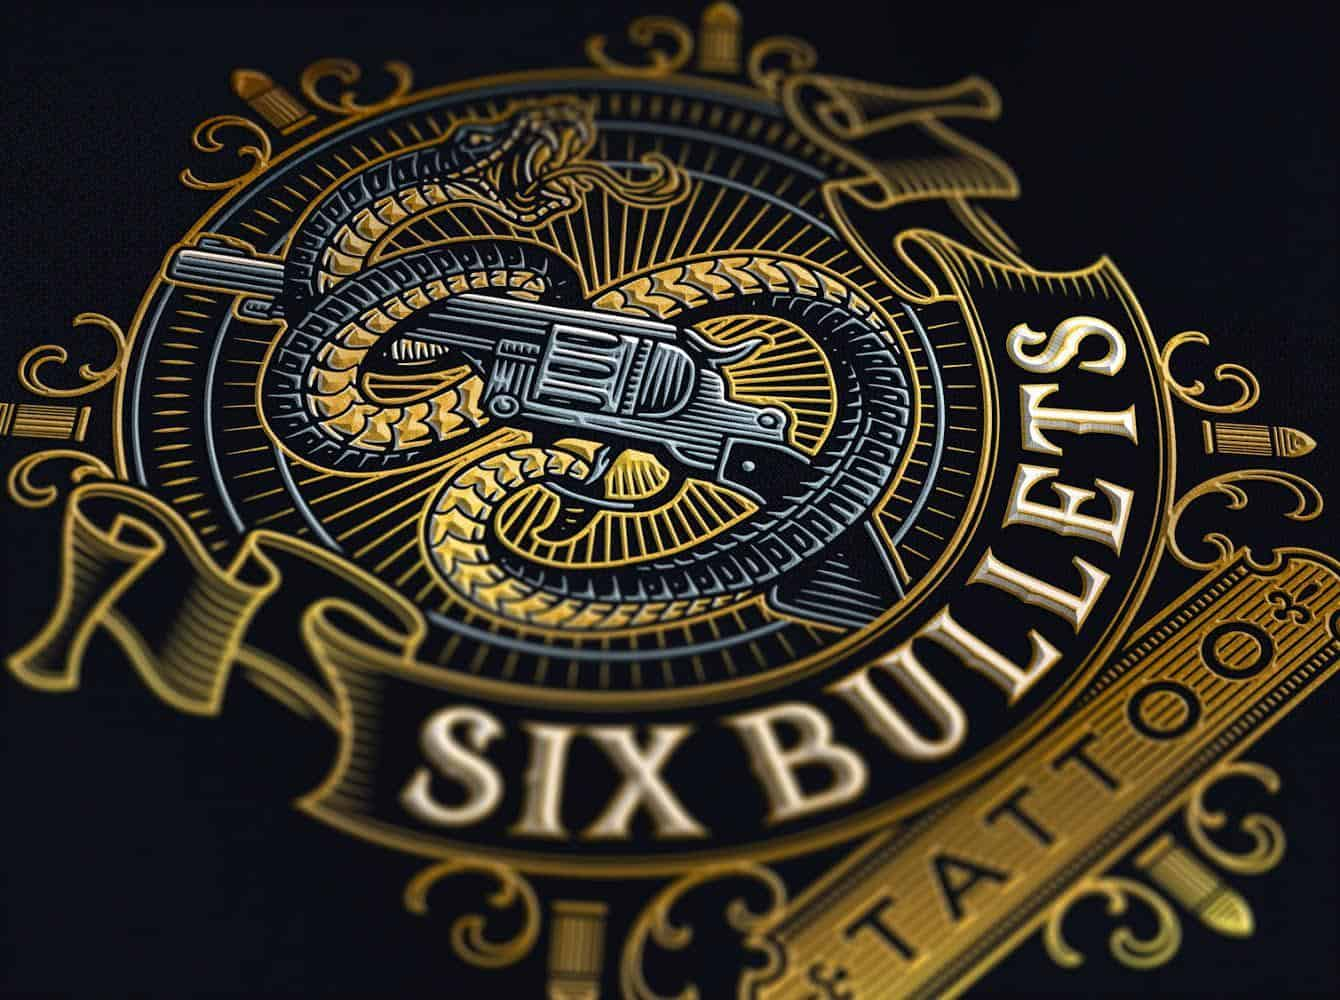 six-bullets-tattoo-london-logo